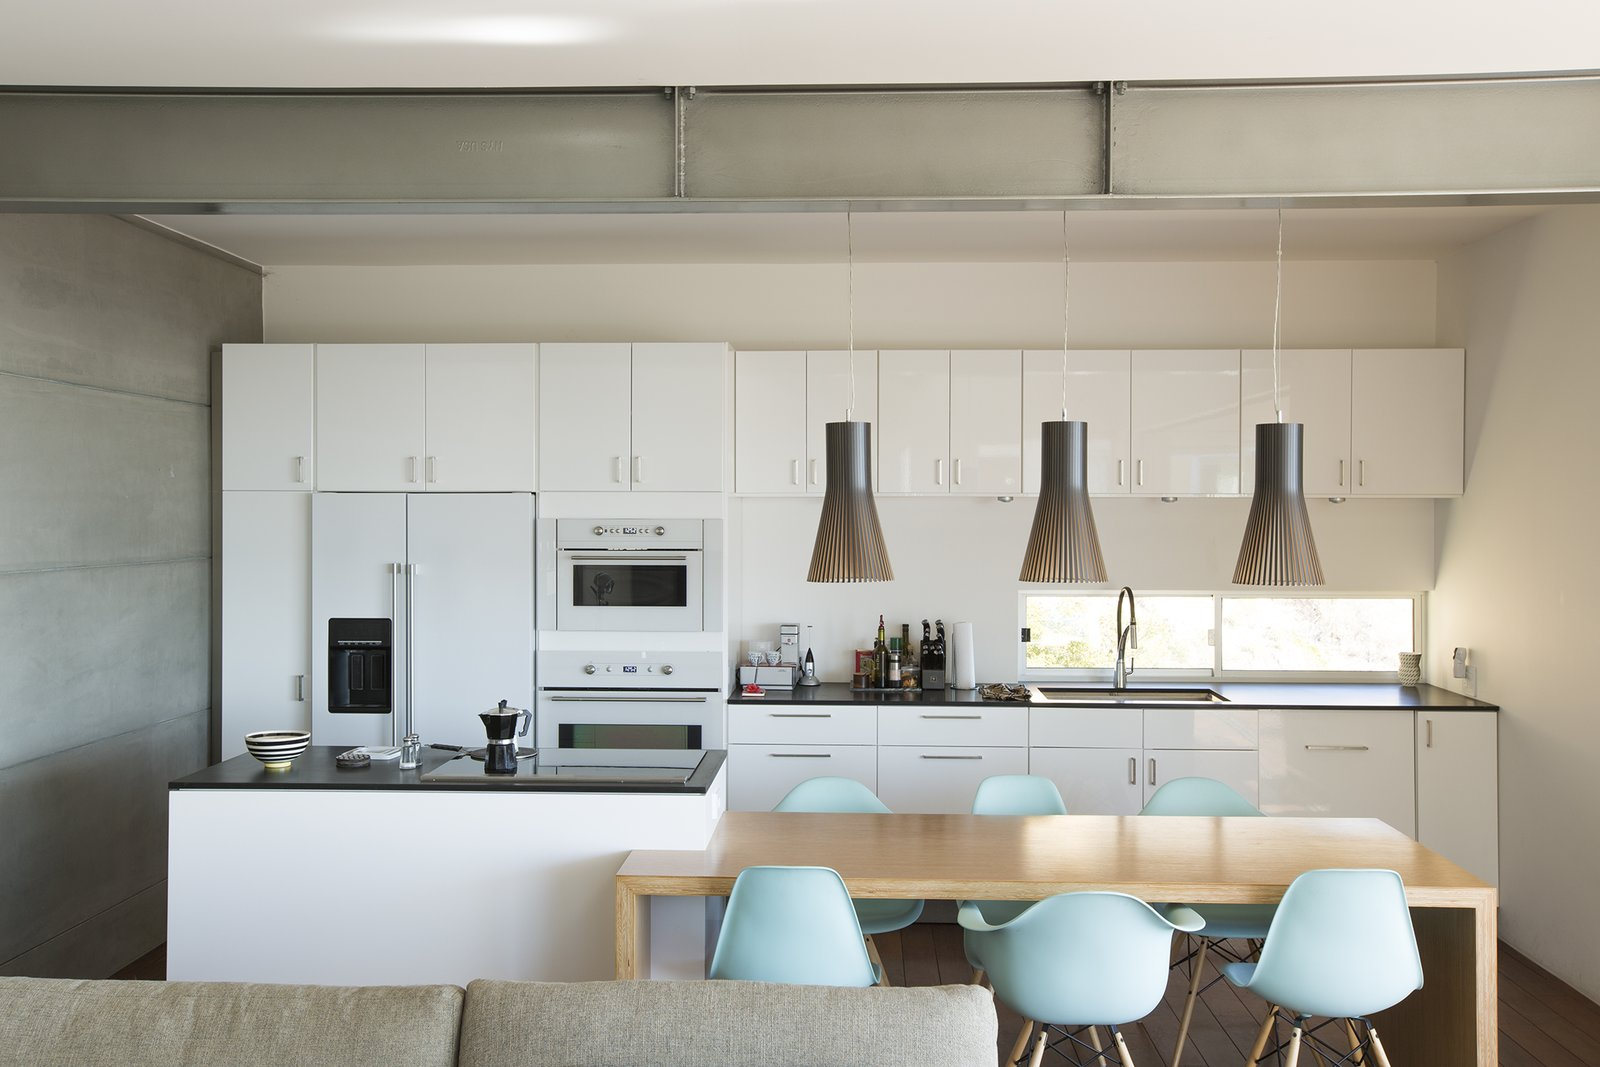 Pendants from Finnish Design Shop light a table by carpenter Leo LaPlante. The Eames chairs are from Design Within Reach.